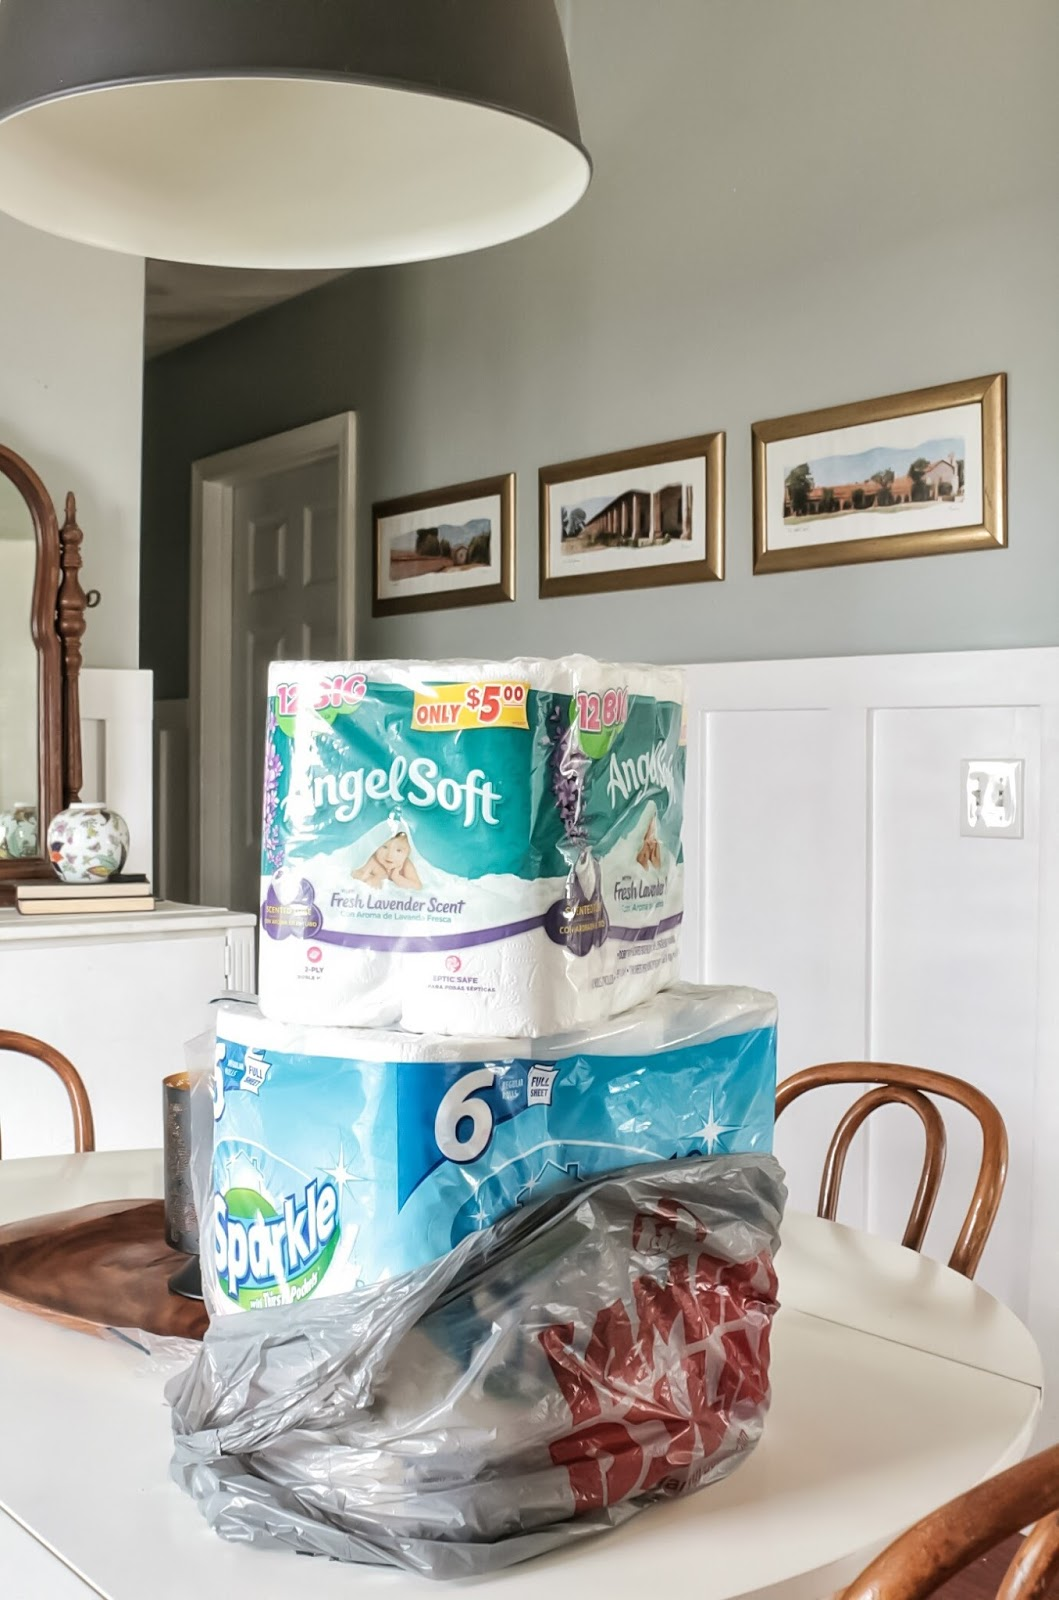 5 Ways to Get Your Bathroom Guest Ready